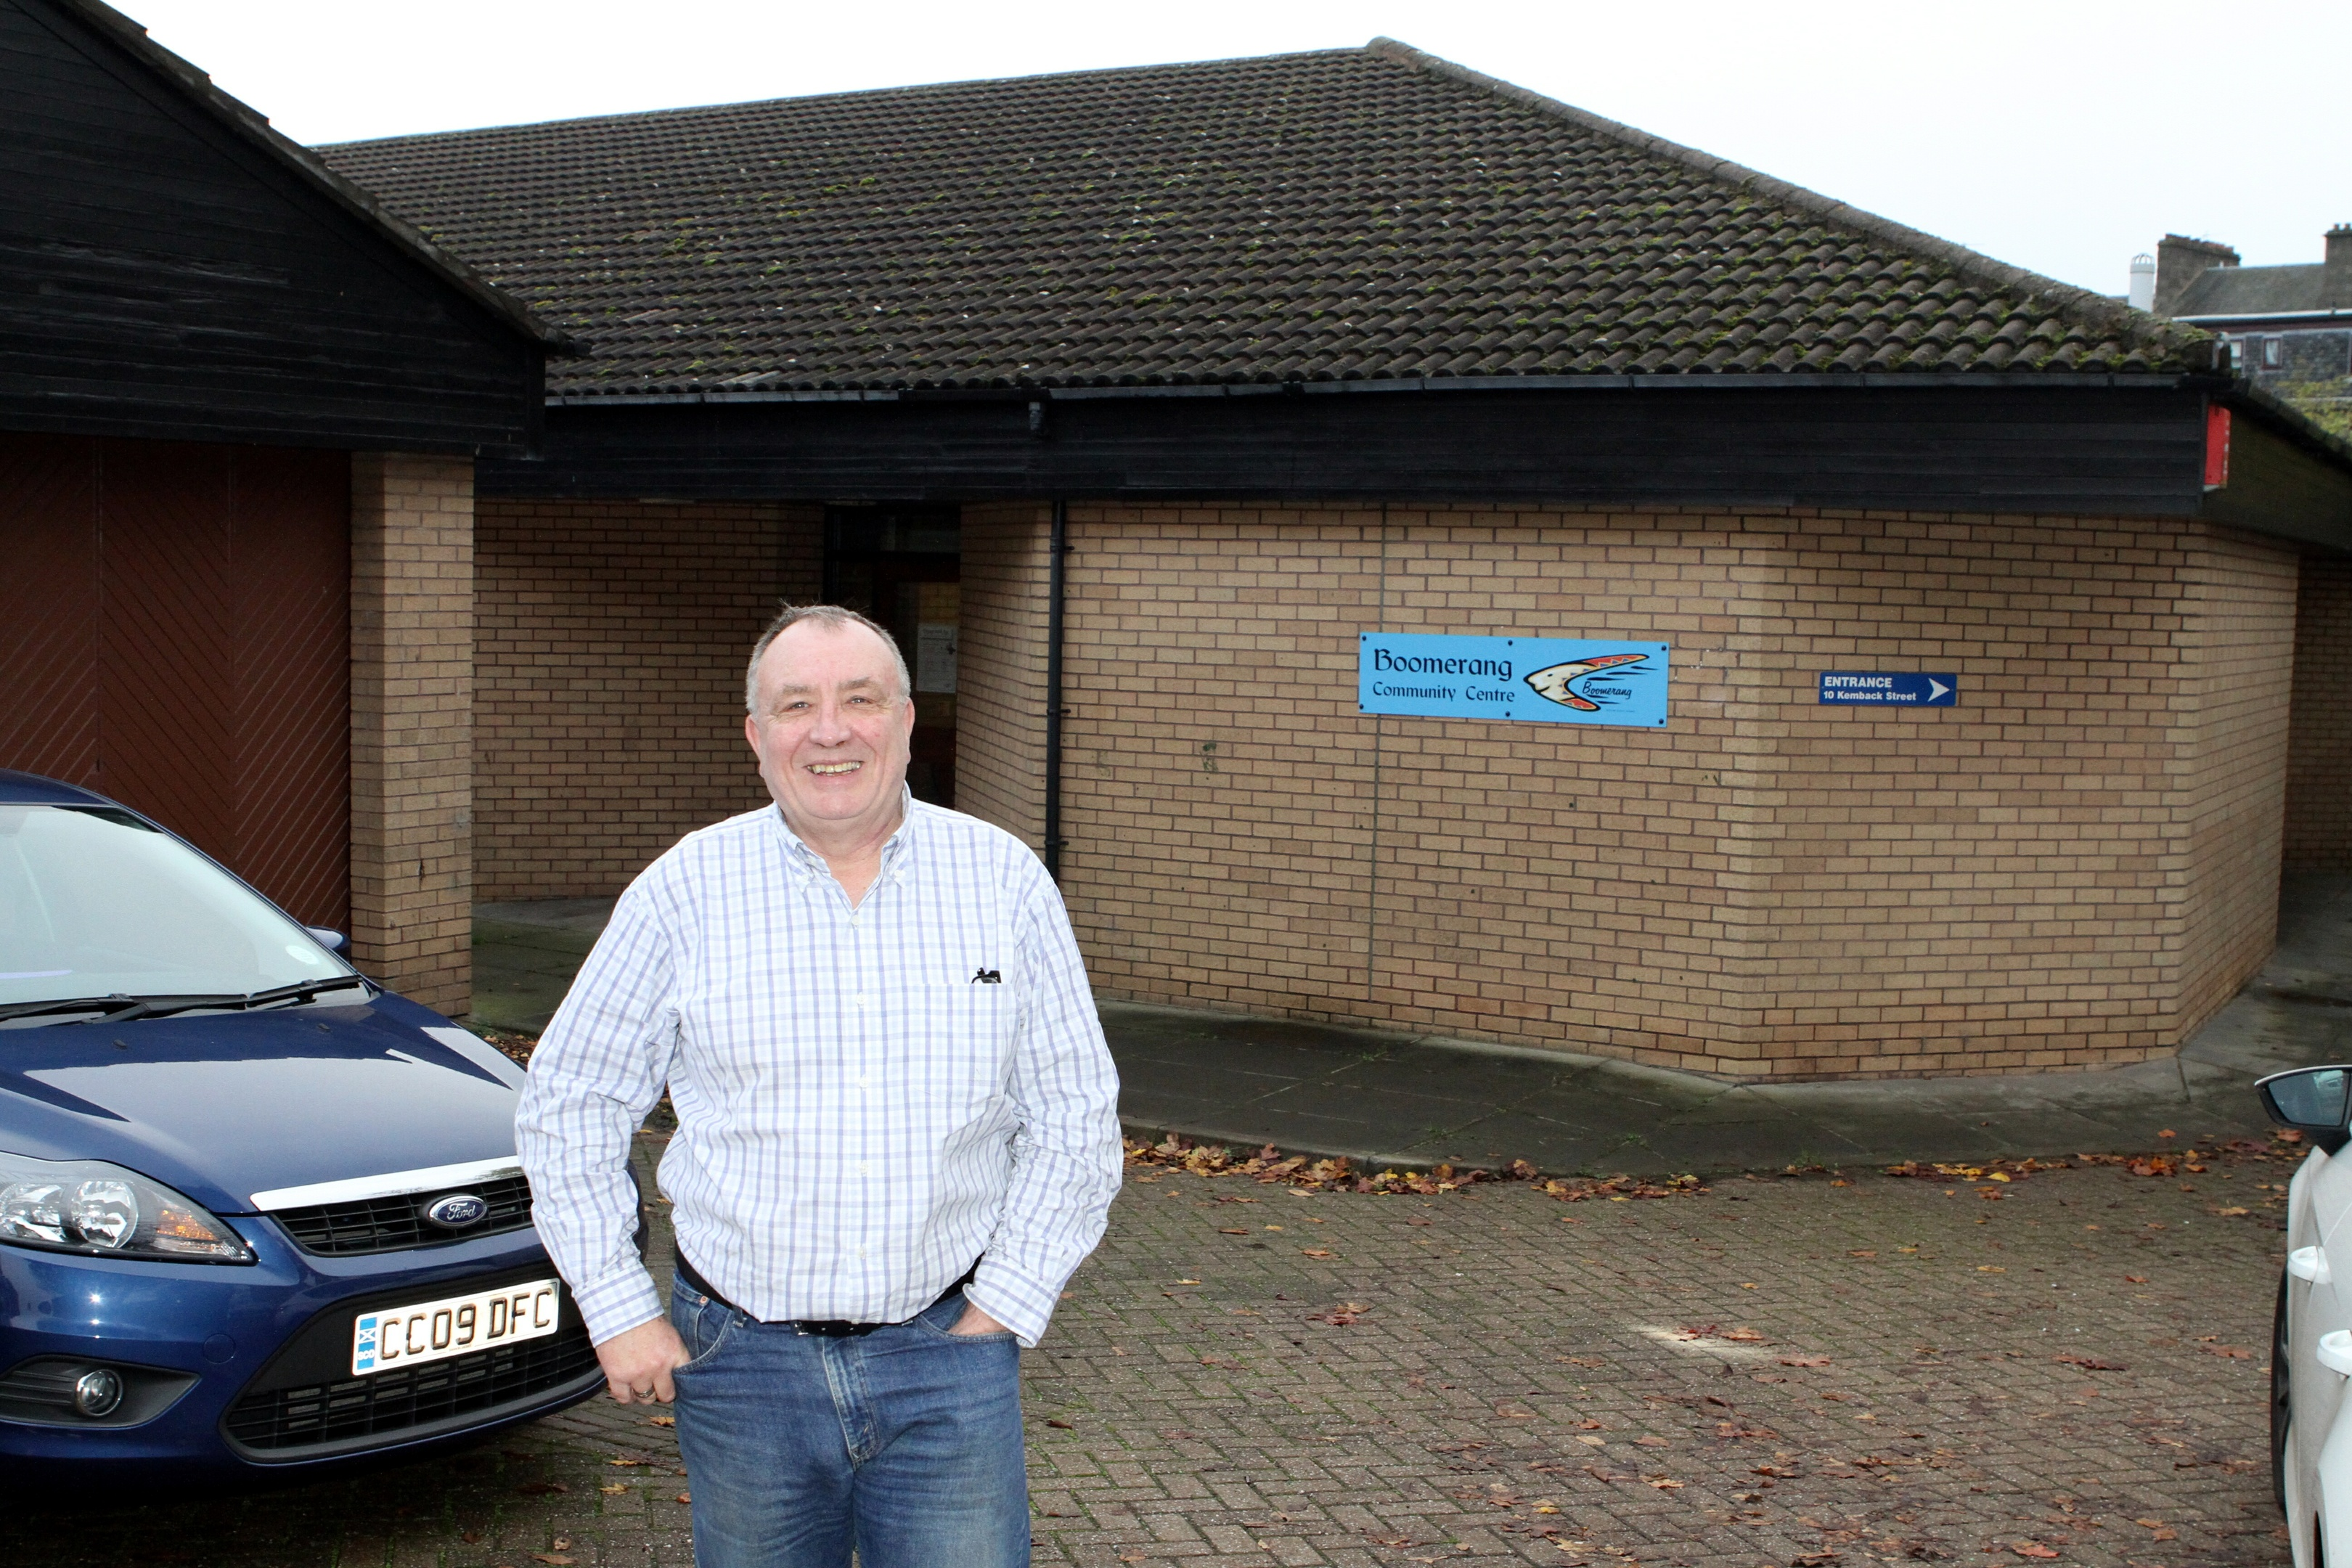 Neil Ellis believes areas need to resurrect the community spirit of years gone by.